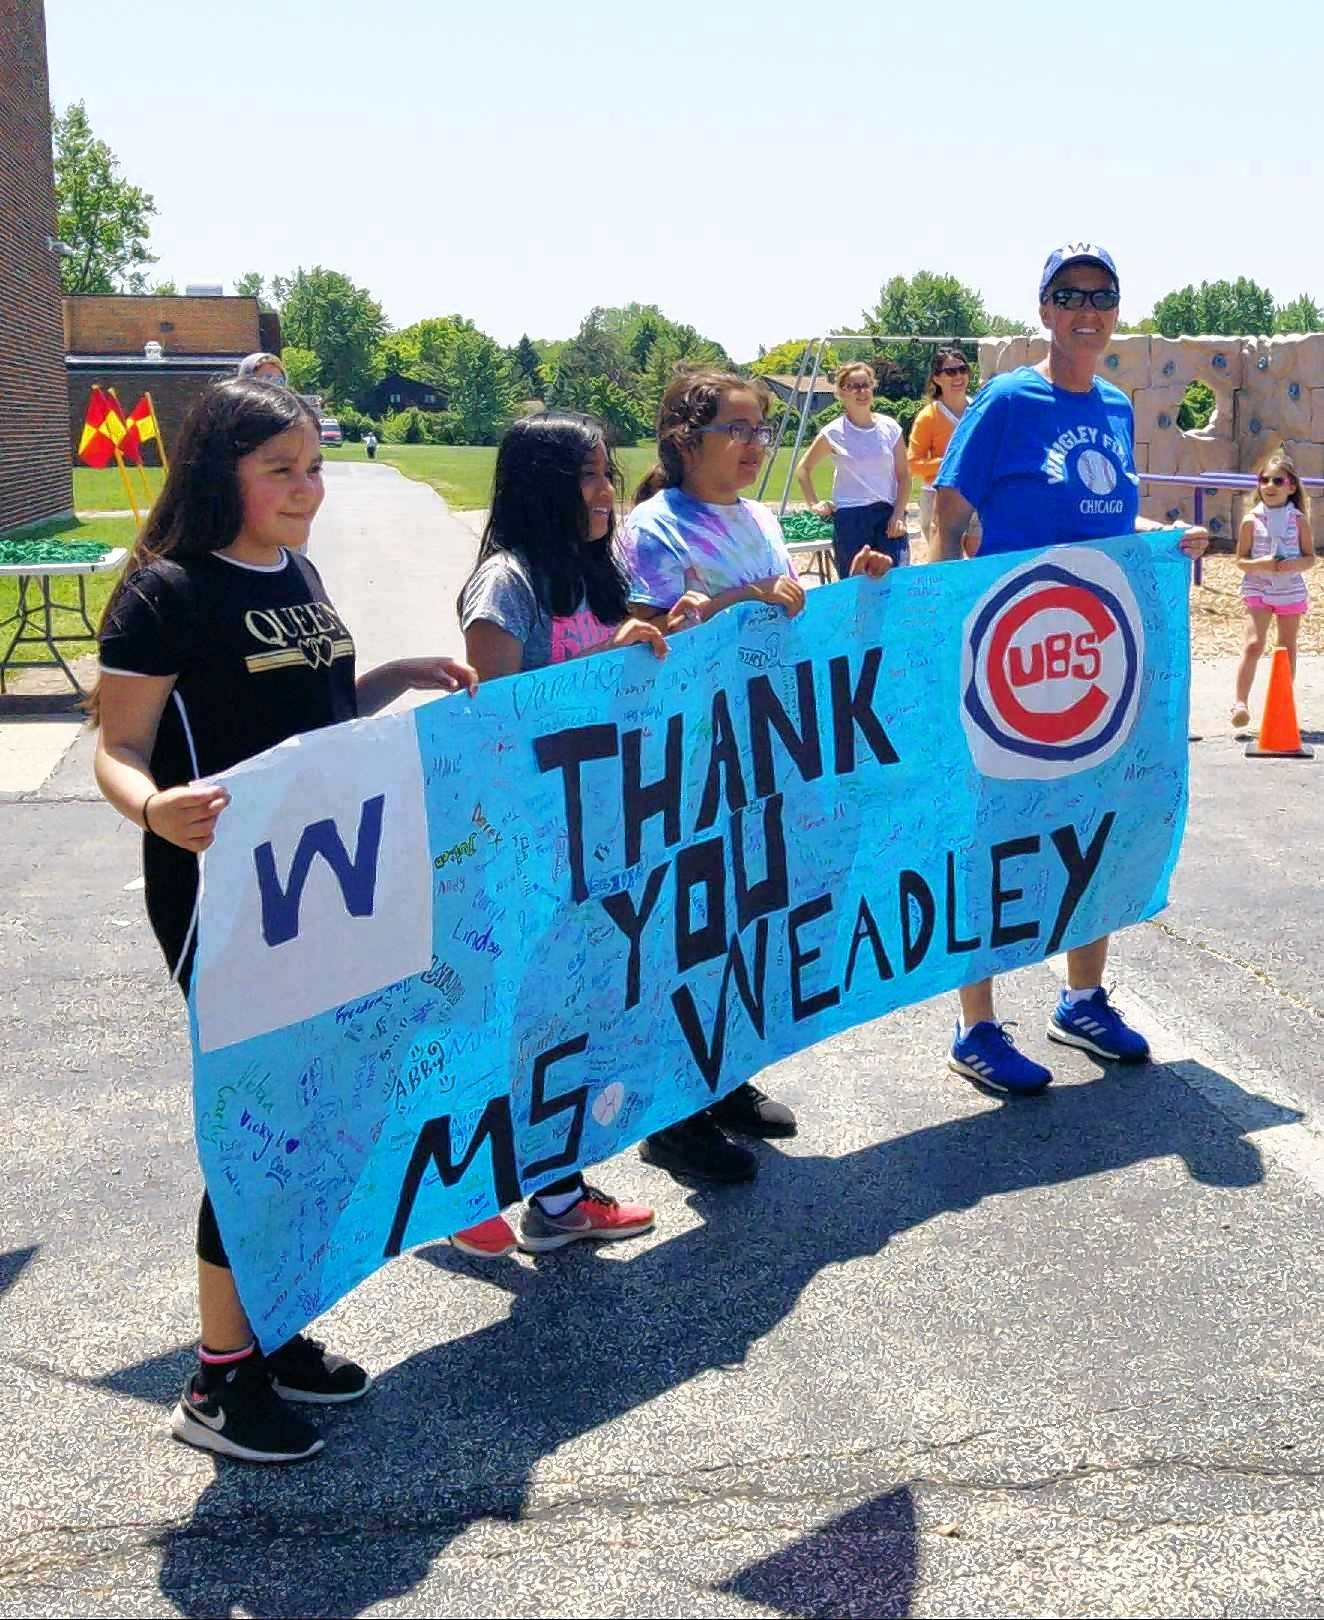 Anne Sullivan Elementary School students presented retiring physical education teacher Cathy Weadley with a banner signed by all 700 of this year's students. Weadley is retiring after 37 years with Prospect Heights Elementary District 23.